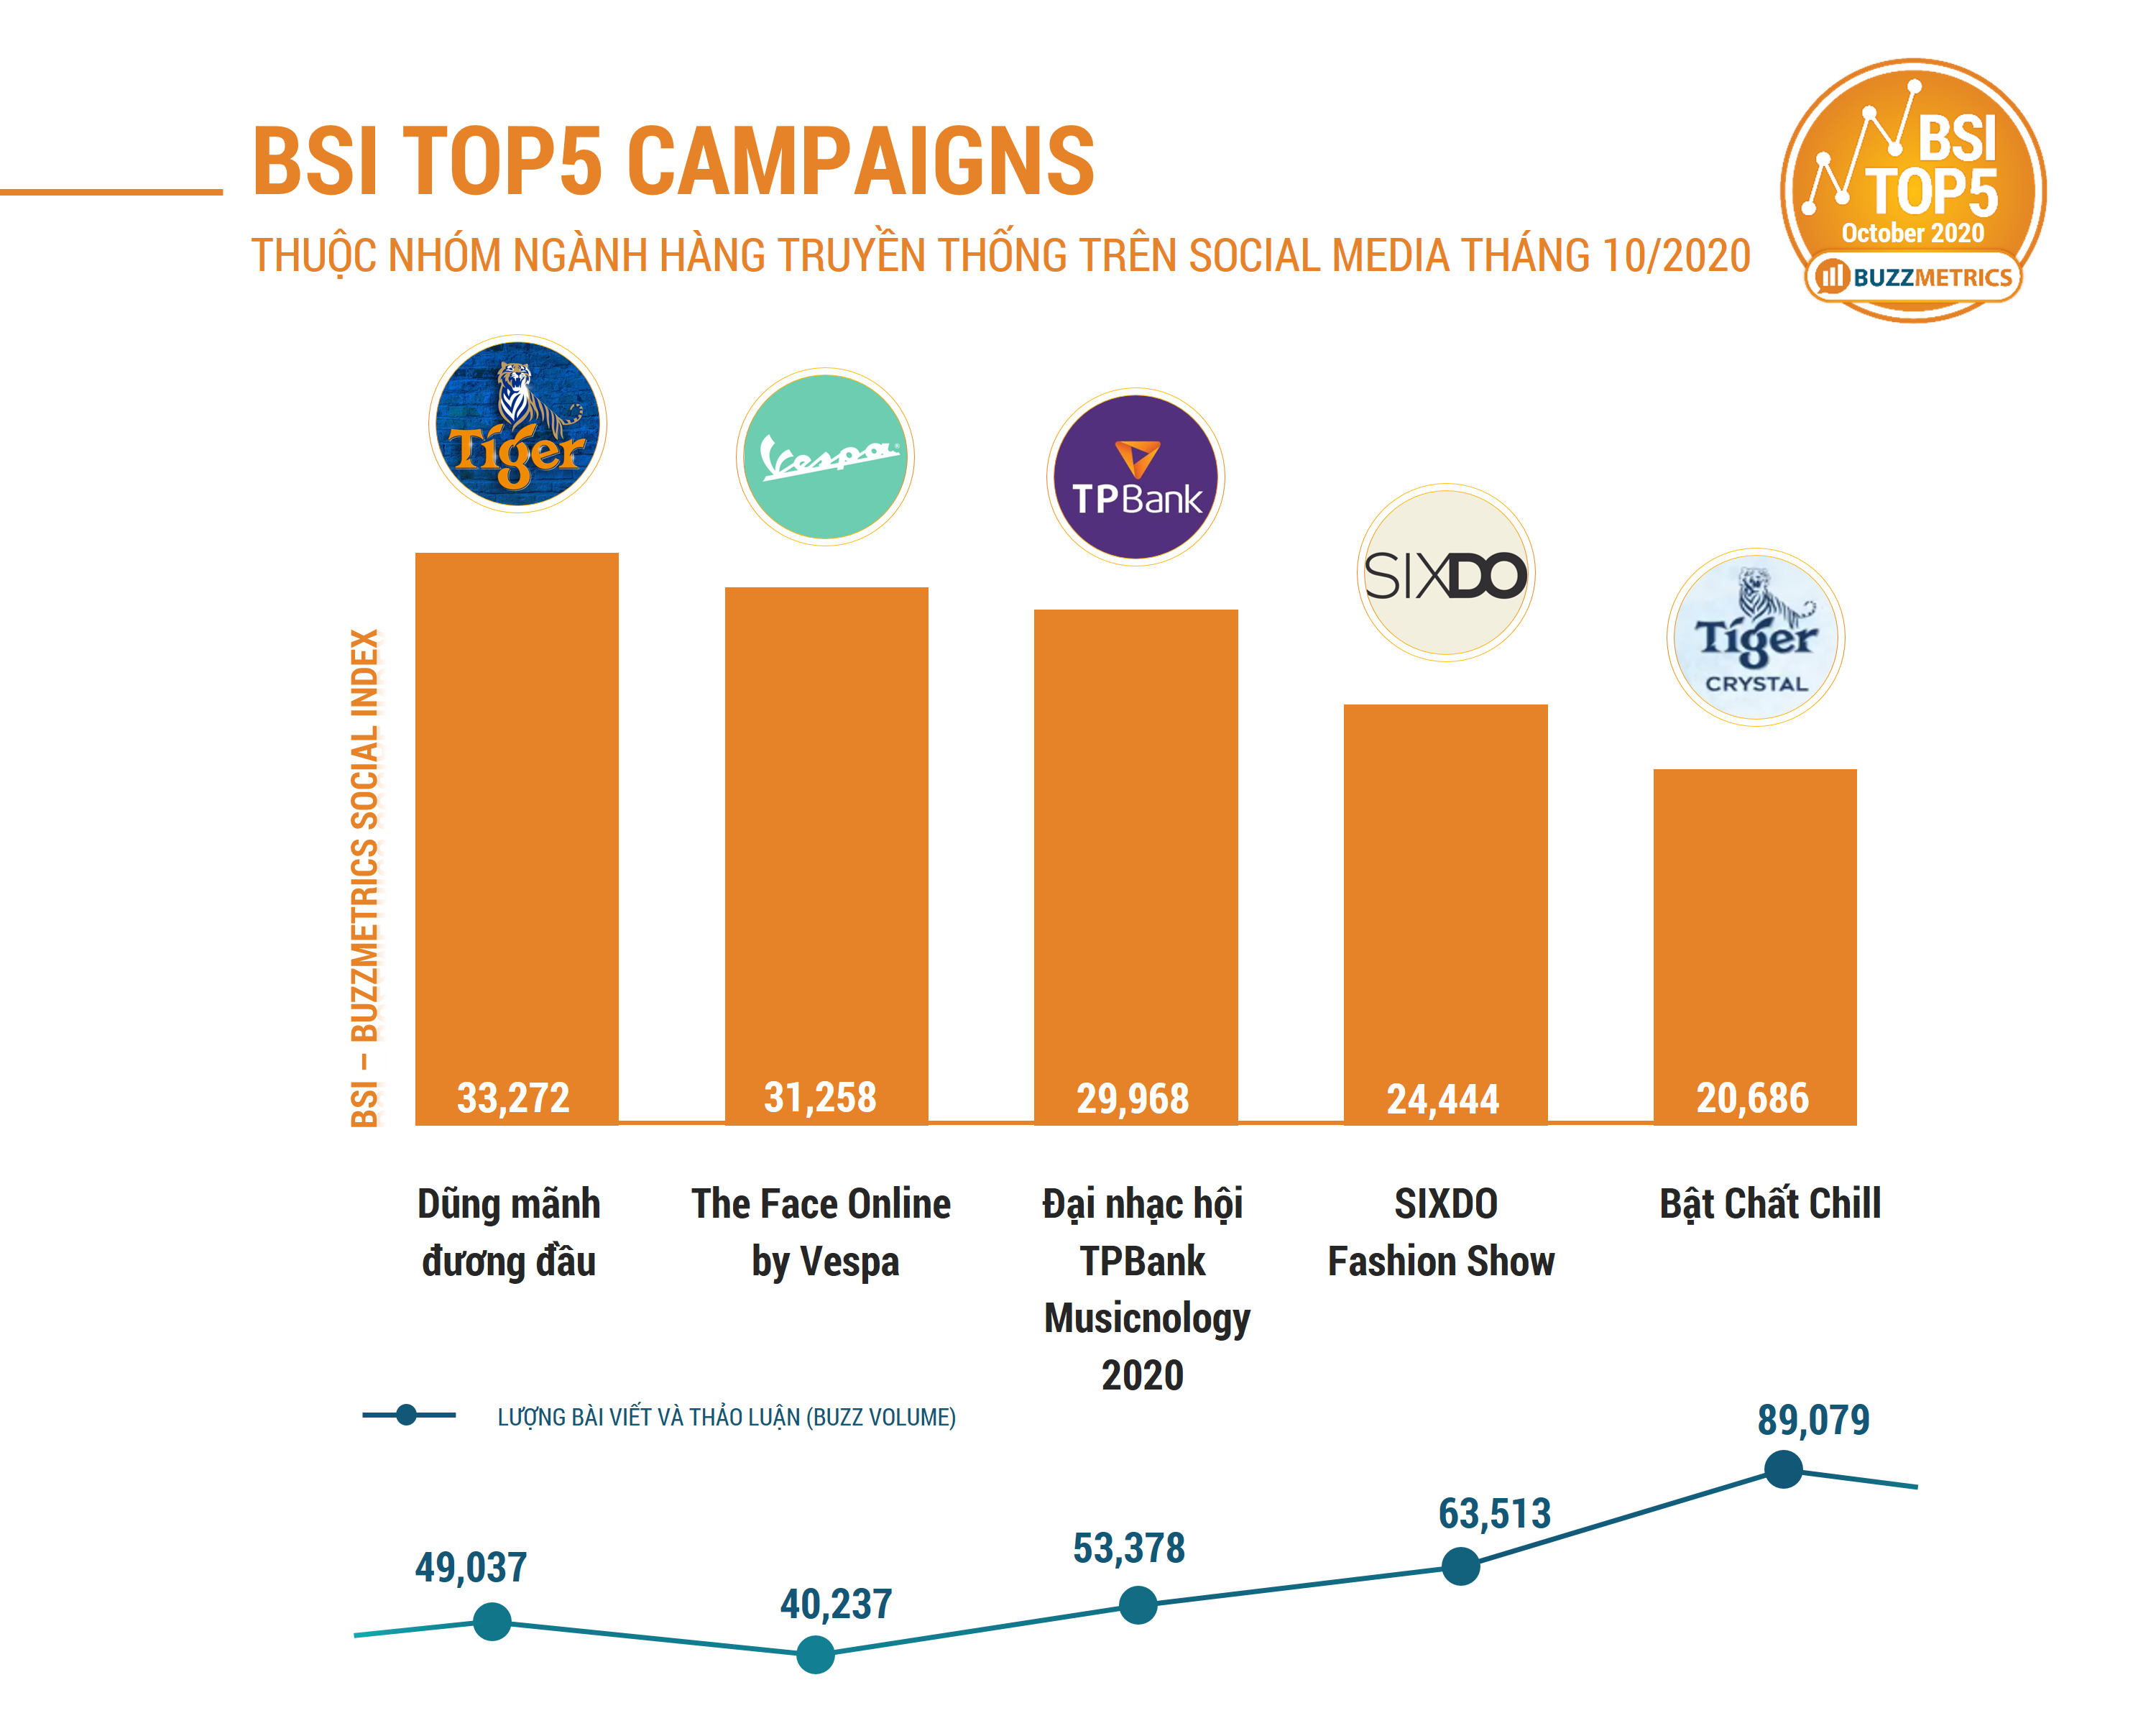 NEW BSI TOP5 OCT 2020 CAMPAIGNS CHART 3